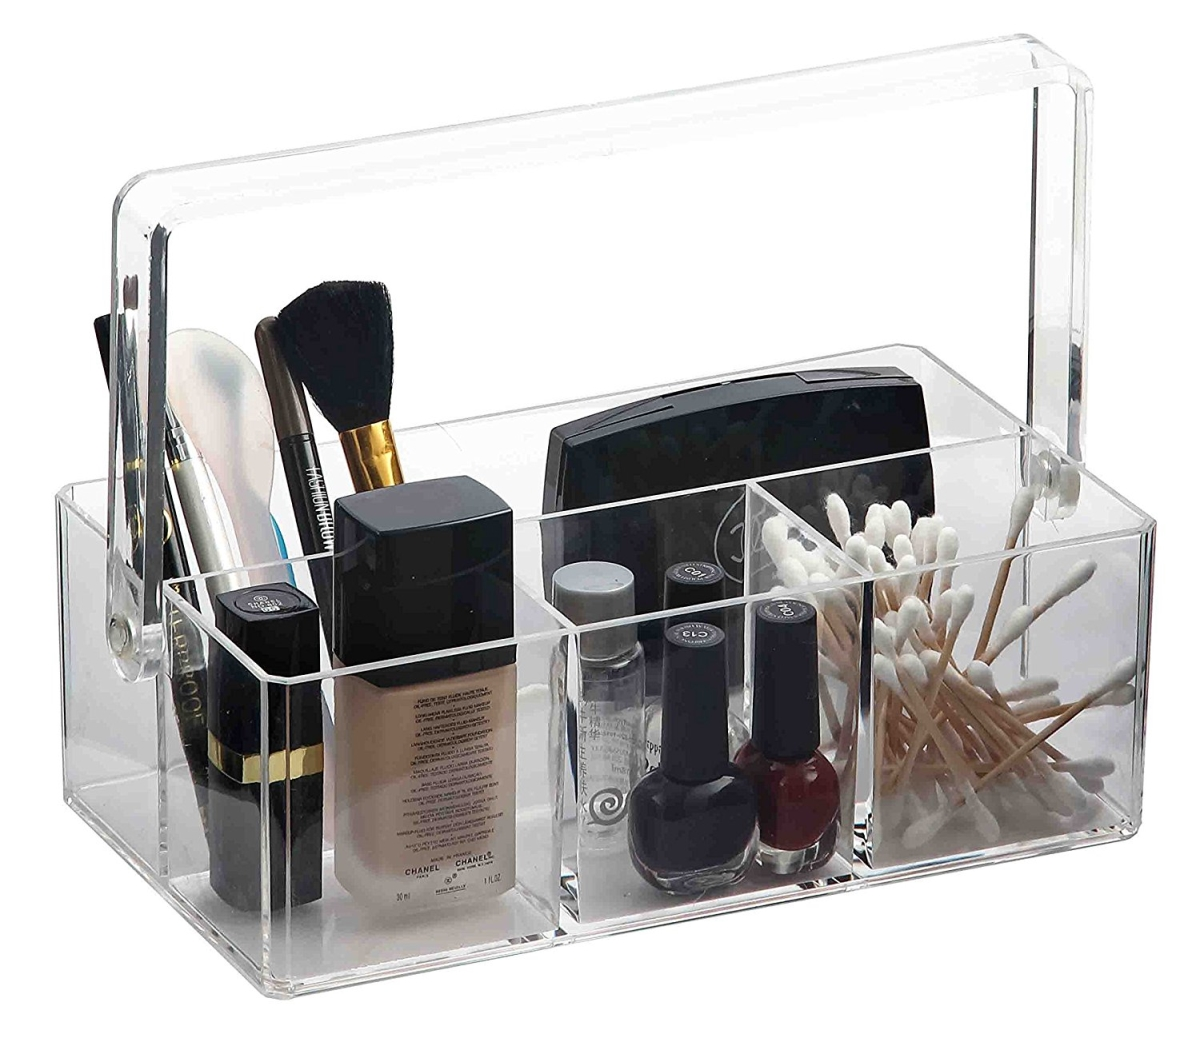 Home Basics MH49523 Clear Plastic Makeup Jewelry Organizer Tray - Holder with Handle